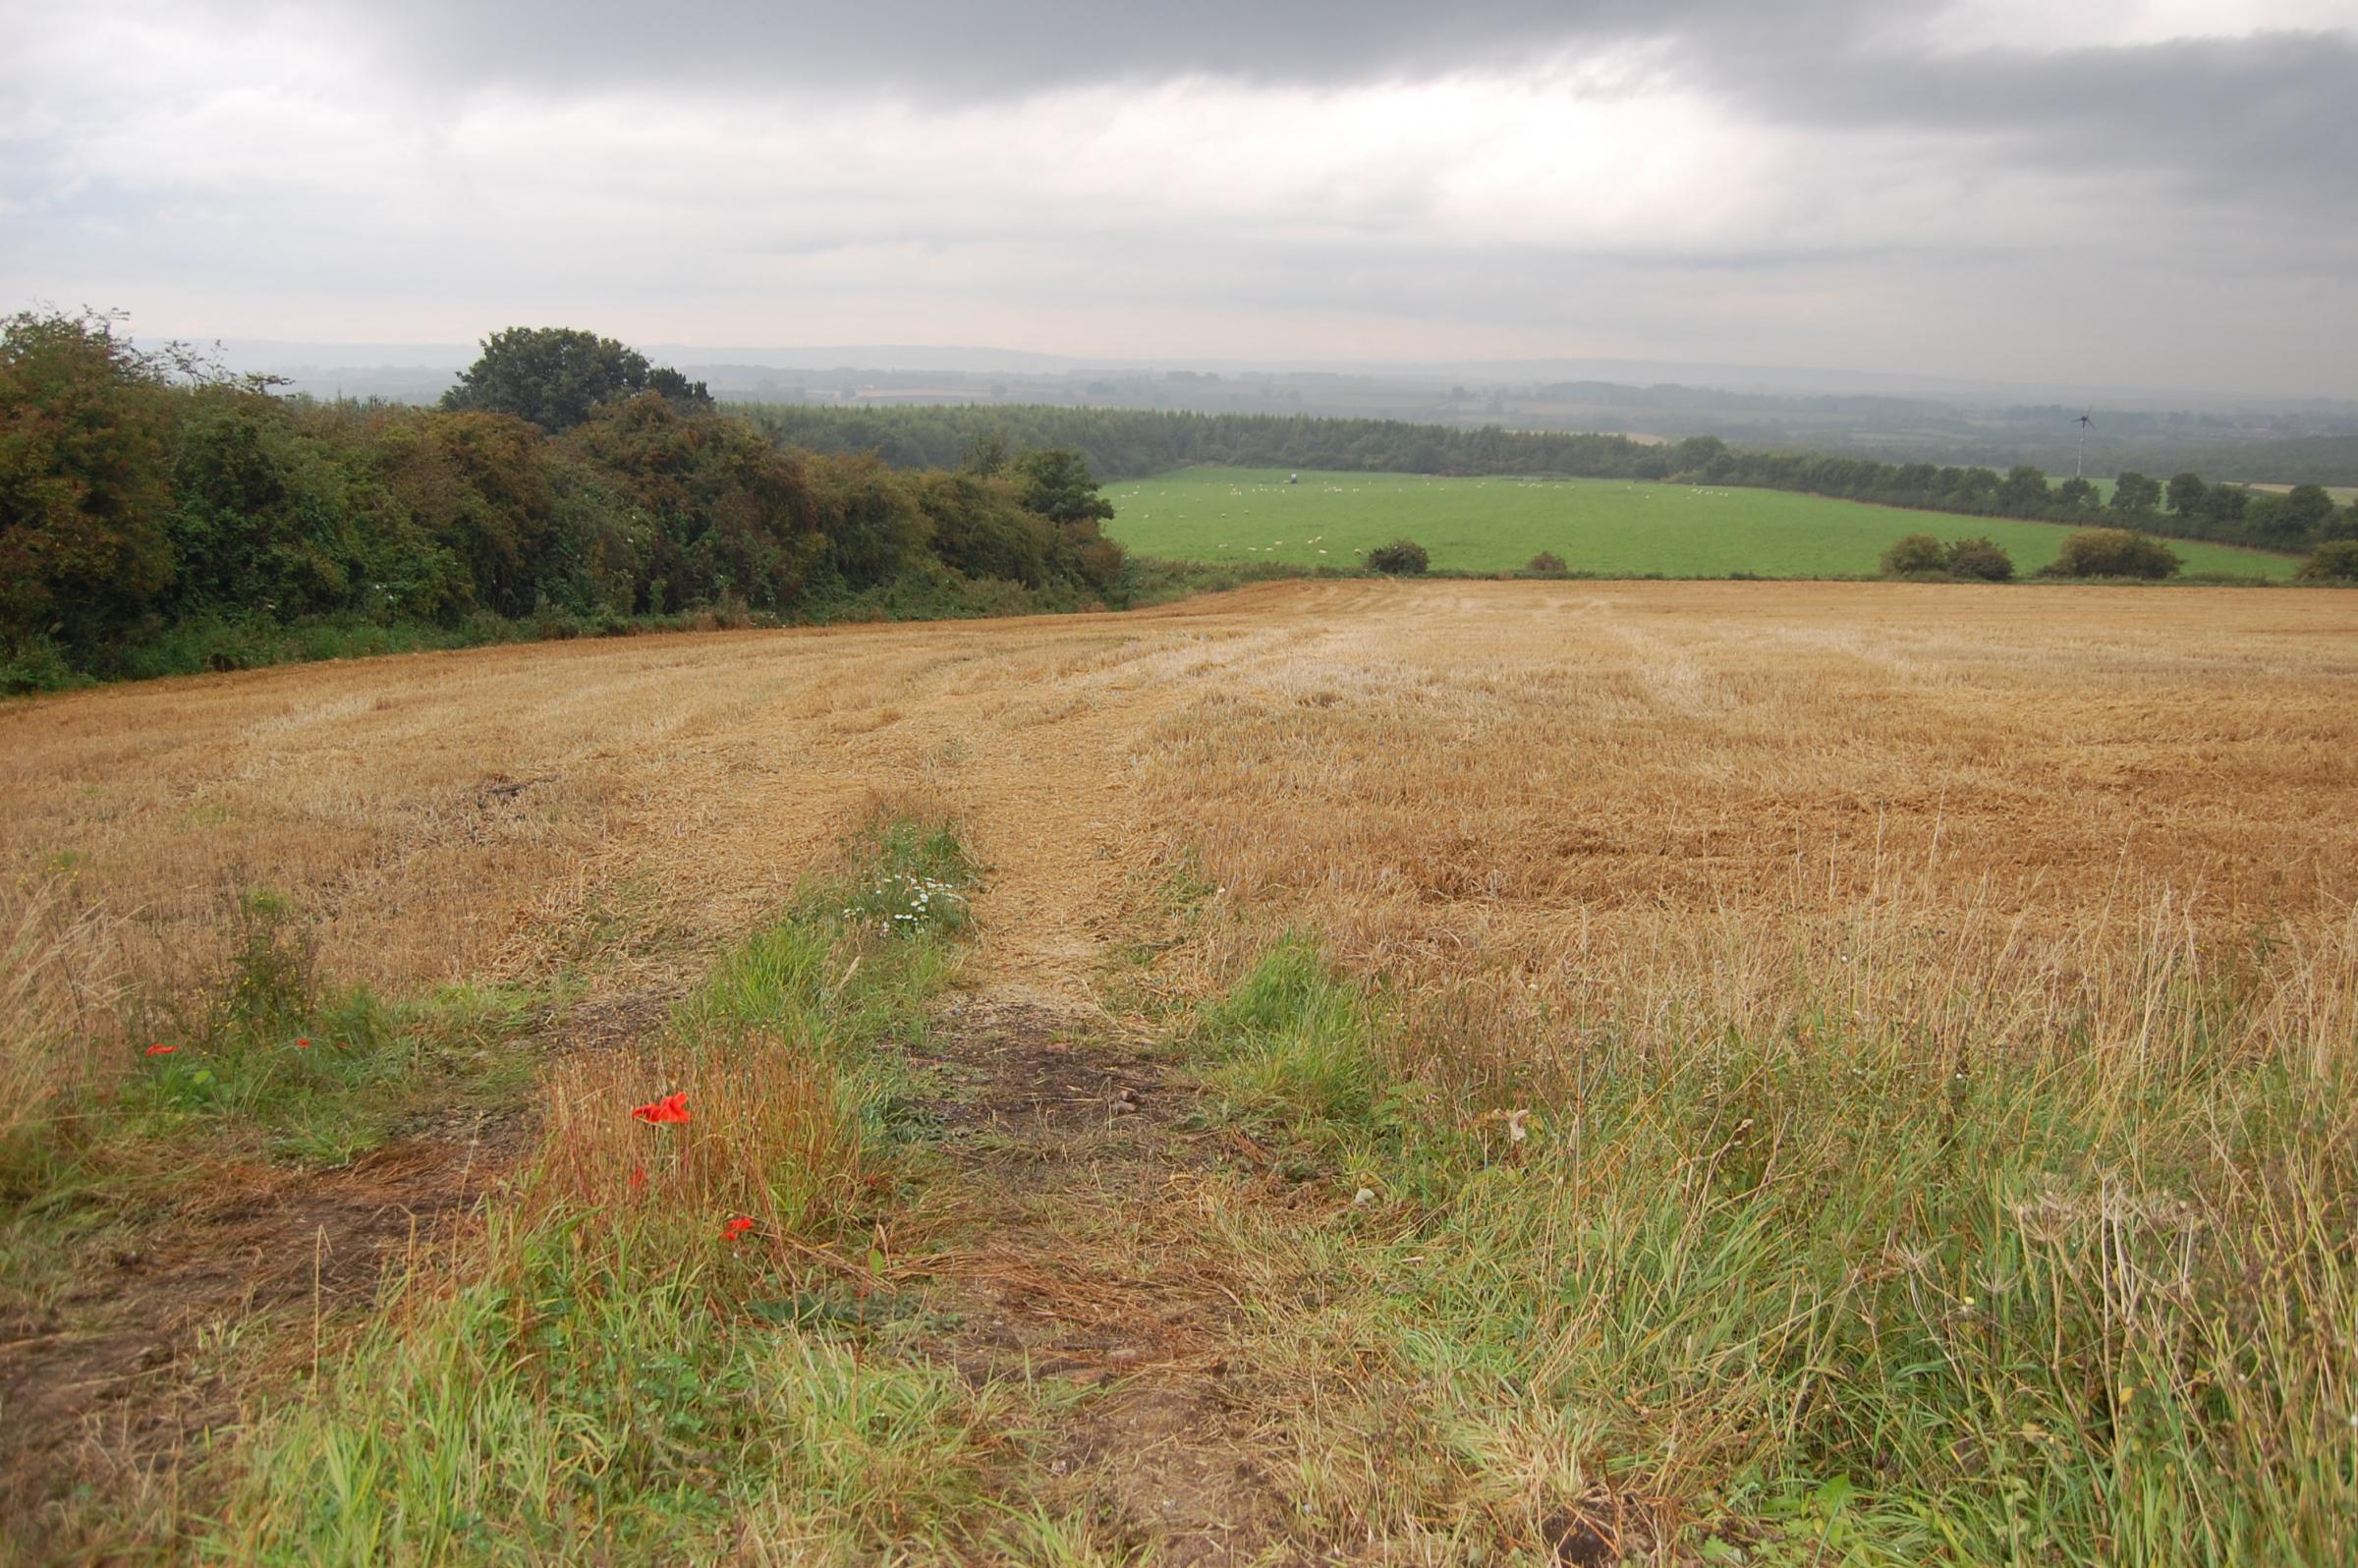 Avant homes wants to build around 70 homes on this land, to the north of Benridge Bank in West Rainton.